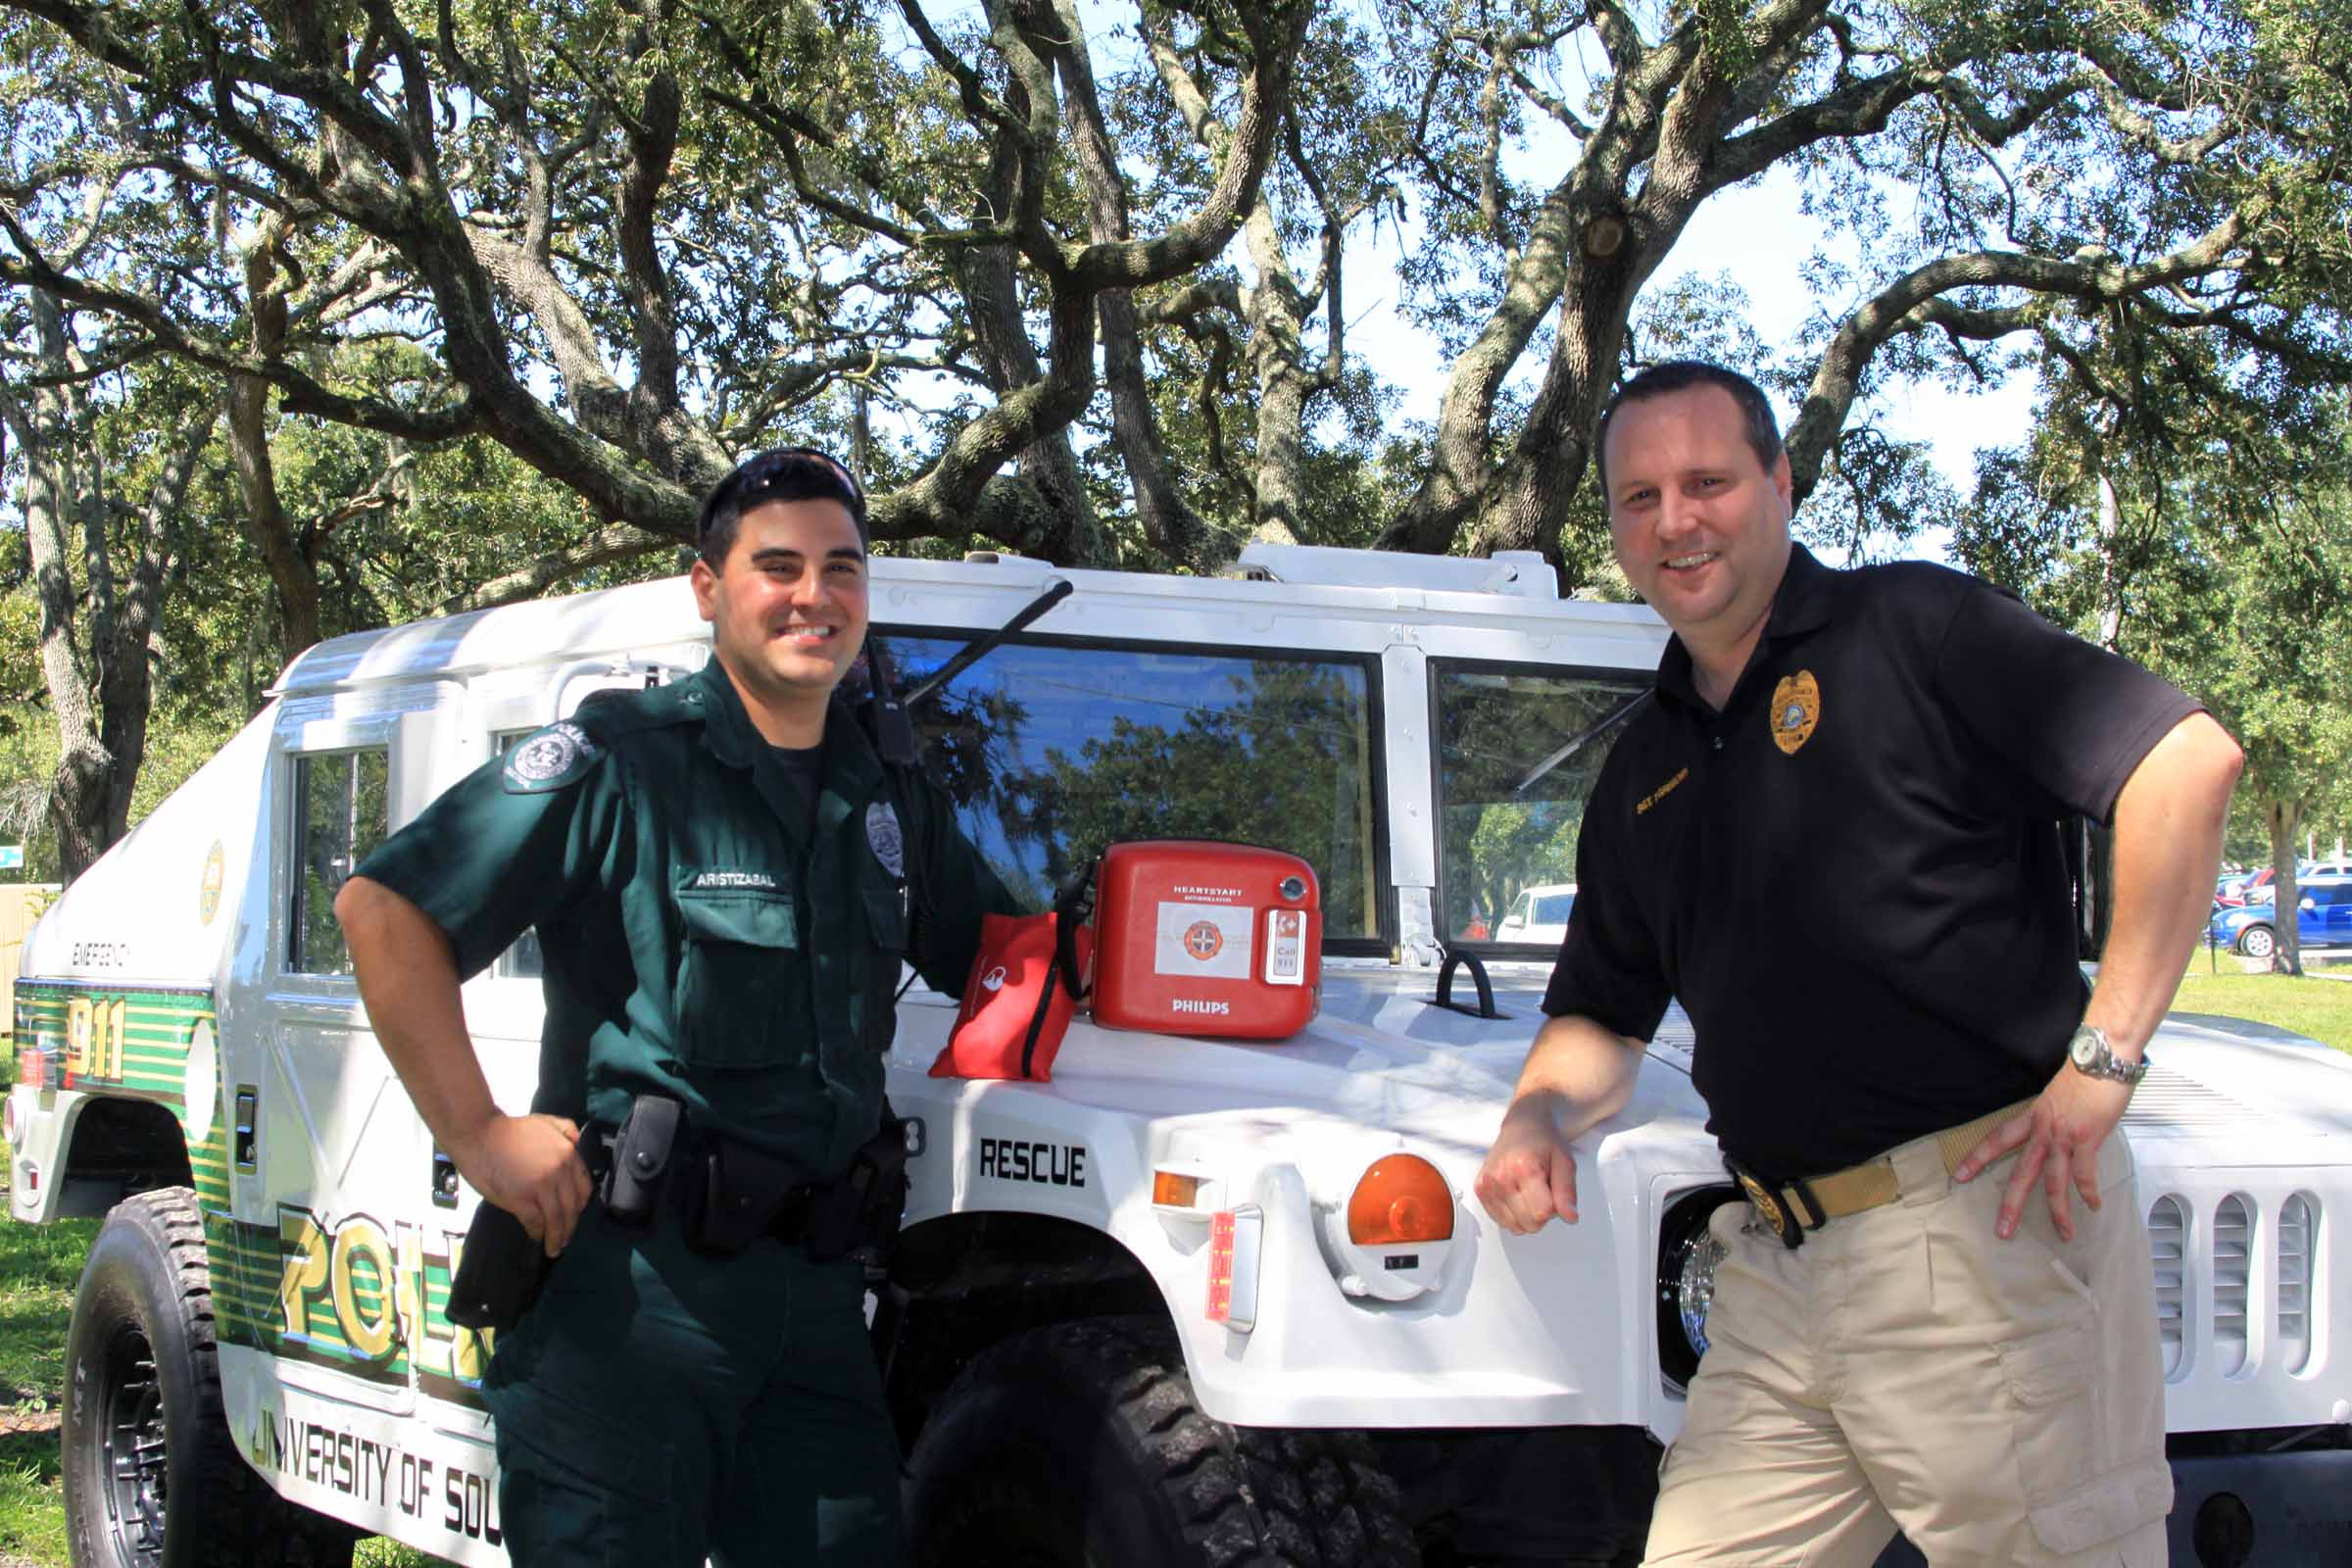 usf-police-with-philips-frx.jpg